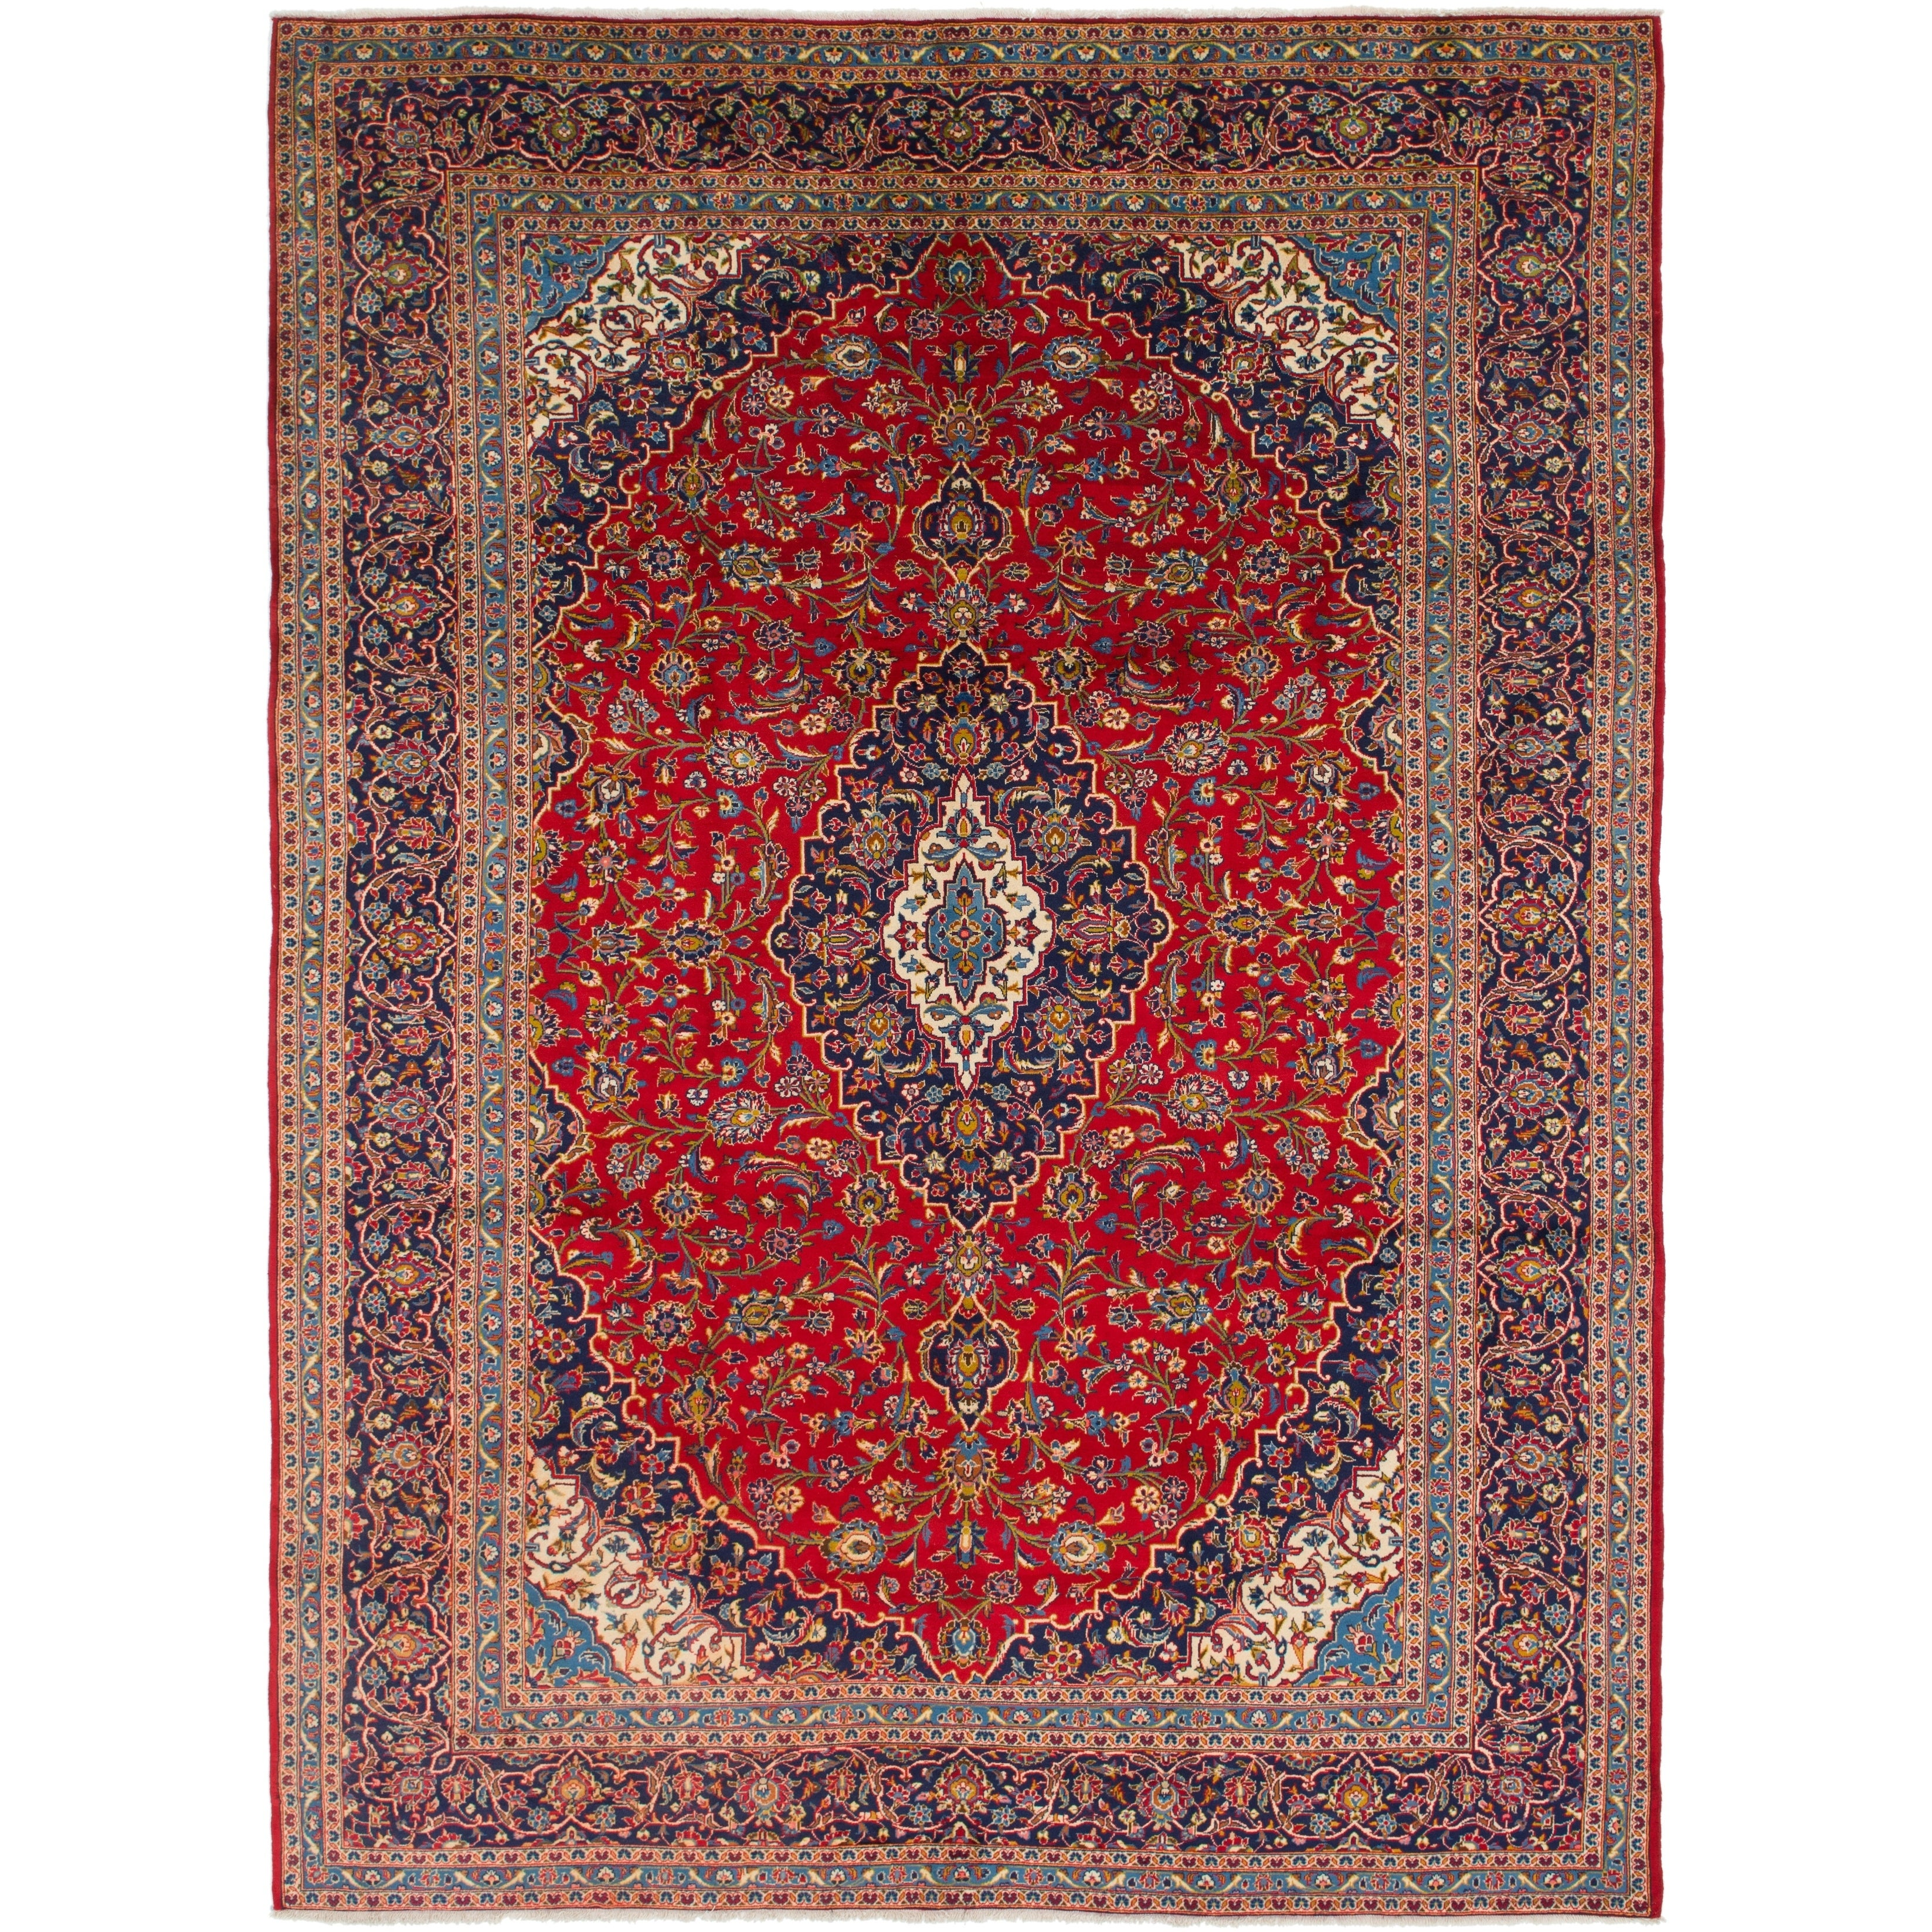 Hand Knotted Kashan Semi Antique Wool Area Rug - 9 9 x 13 4 (Red - 9 9 x 13 4)